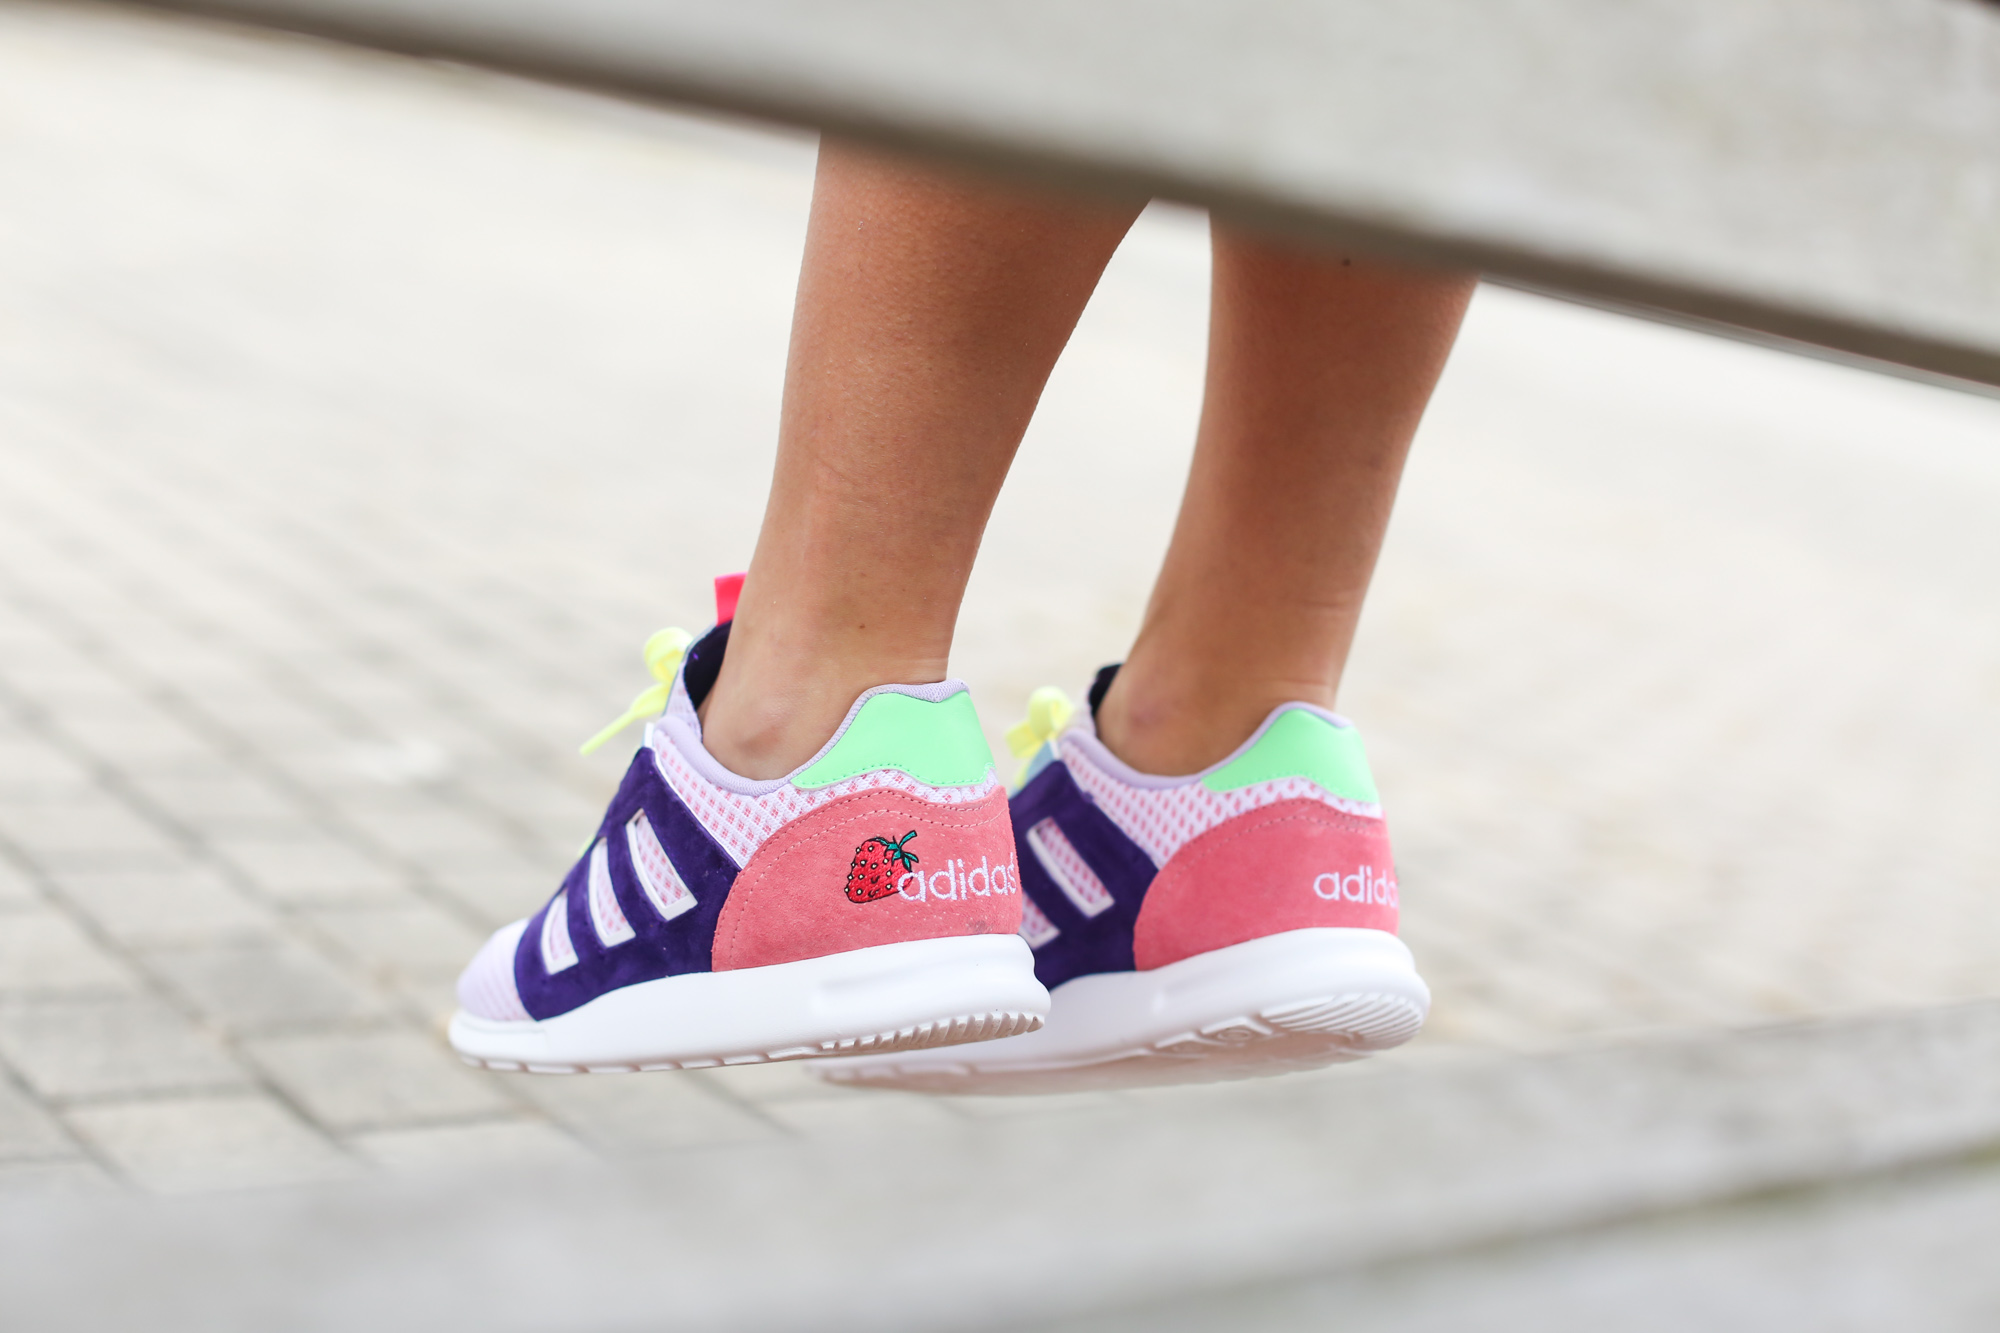 Clochet-streetstyle-strawberry-daiquiri-adidas-ZX-500-2.0-W-Cocktail-Sneaker-Boutique-Pack-leztin-street-6